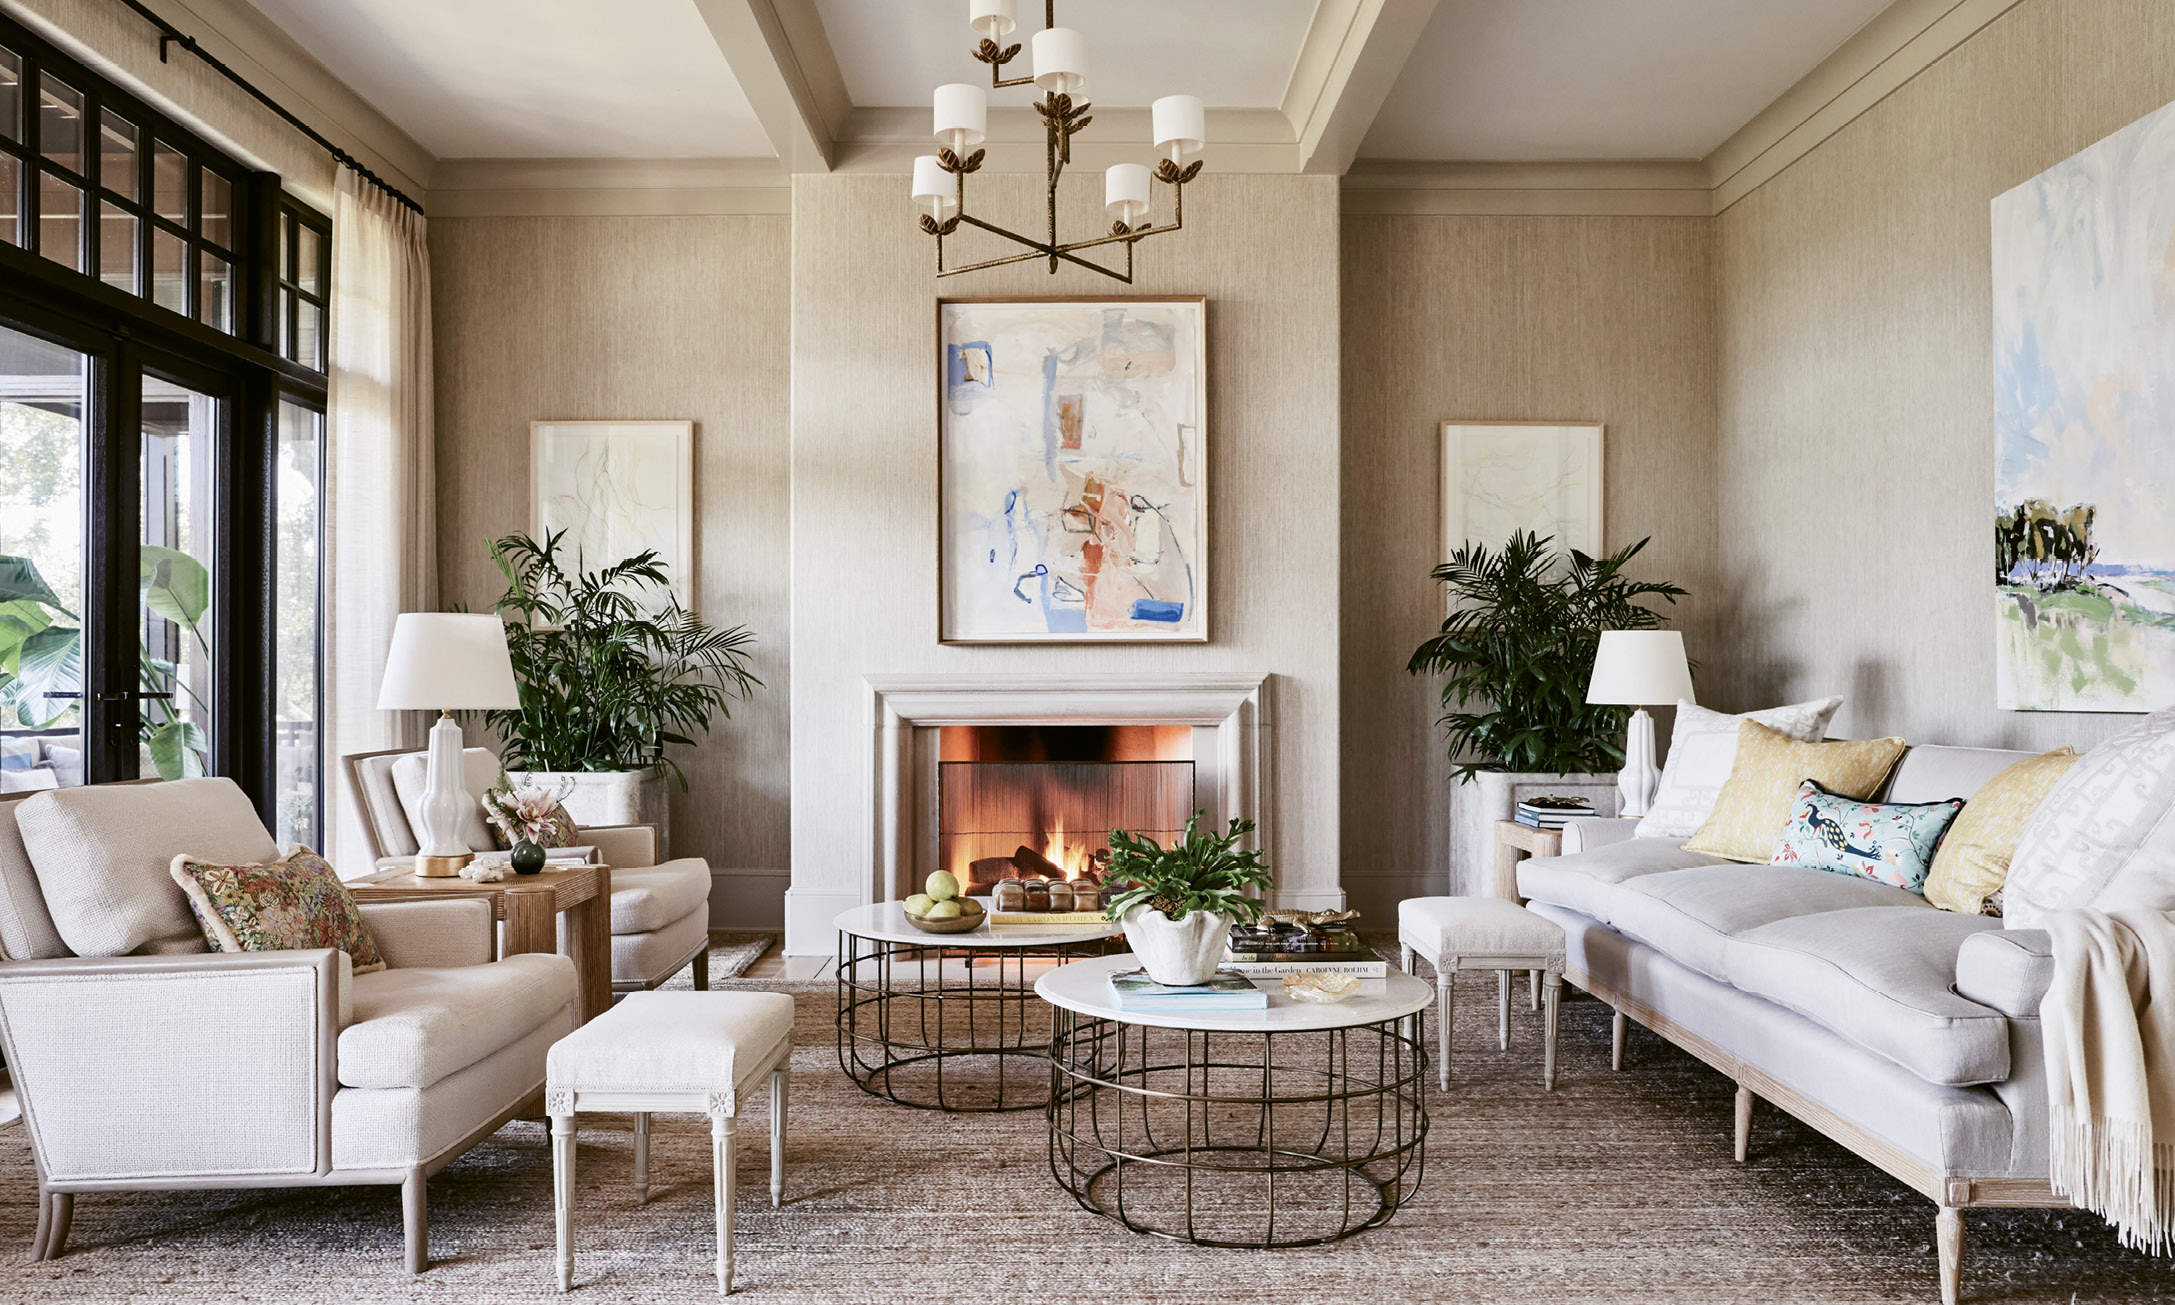 Neutral Territory: In the living room, a neutral yet textured sandy palette, including grasscloth-covered walls and upholstered linen sofa and chairs, allows the expansive marsh view to take center stage. The Frank Phillips painting over the mantel, found at George Gallery, as well as some commissioned works, provide splashes of subtle color. Bamboo and brass accents add dimension.